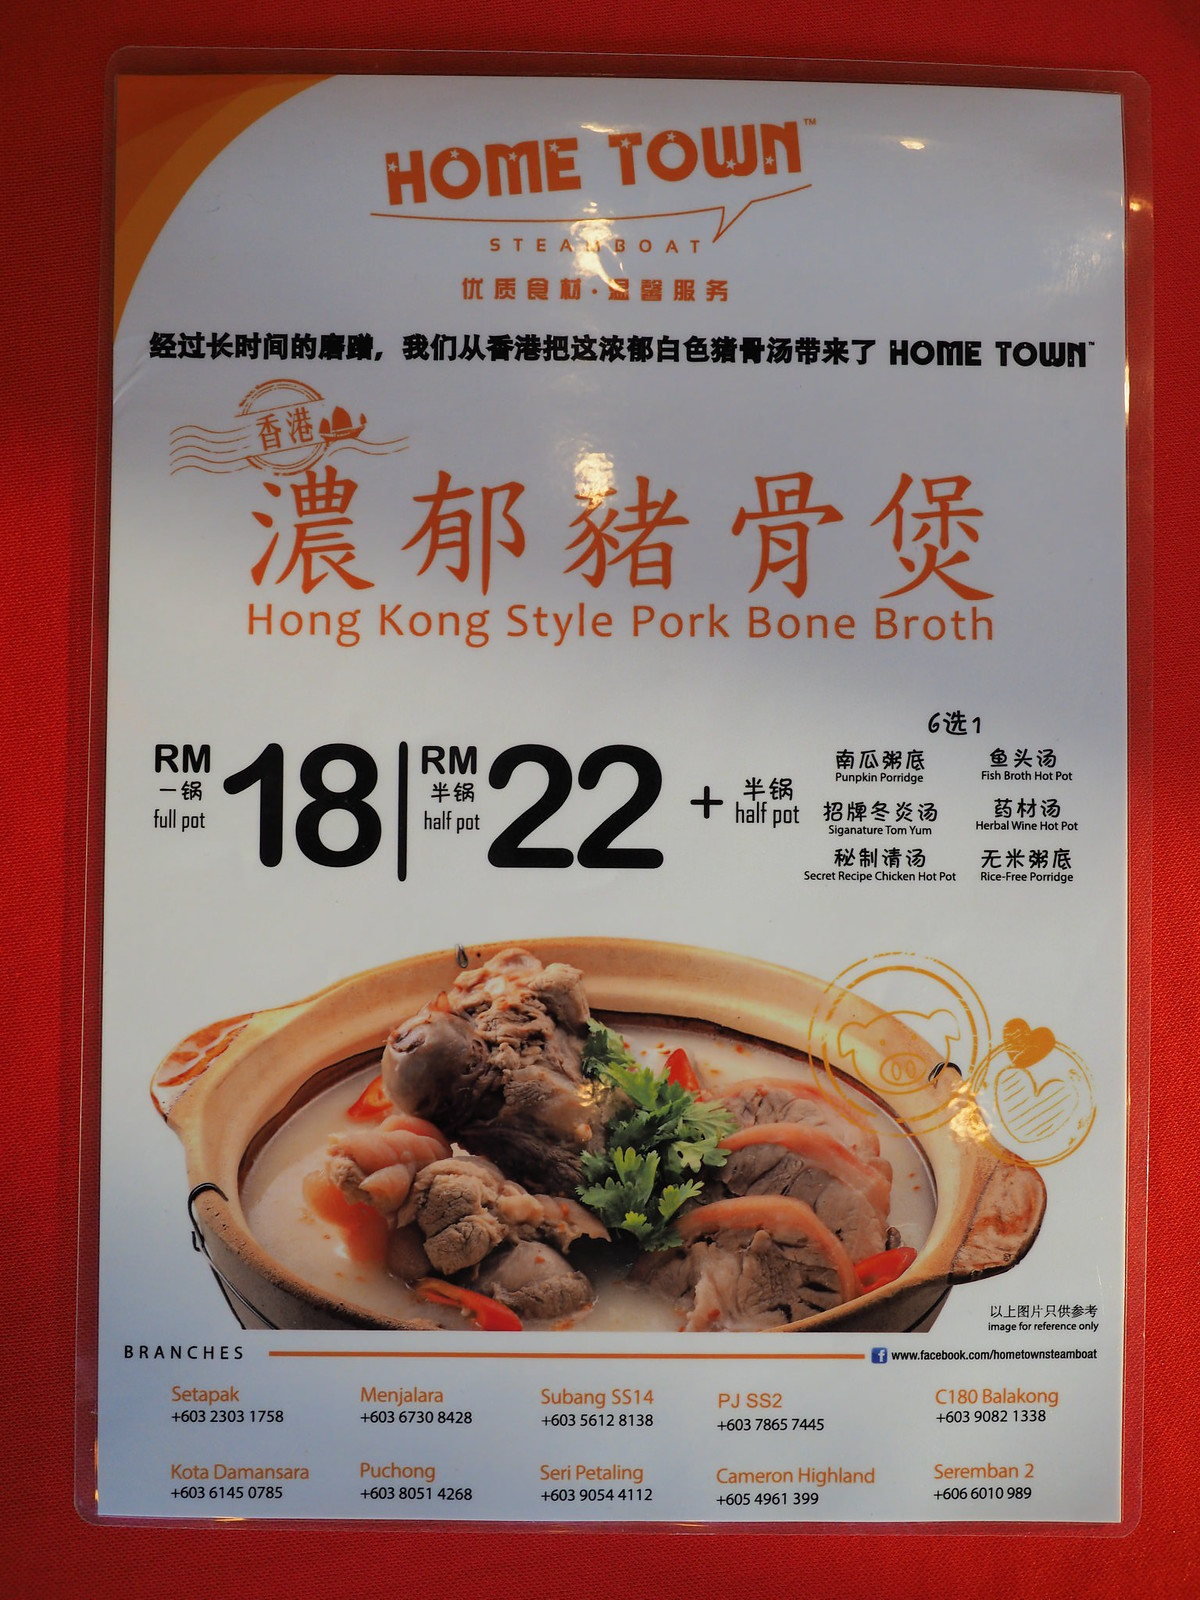 Hometown Steamboat SS2 好家乡火锅世家's Hong Kong Style Pork Bone Broth